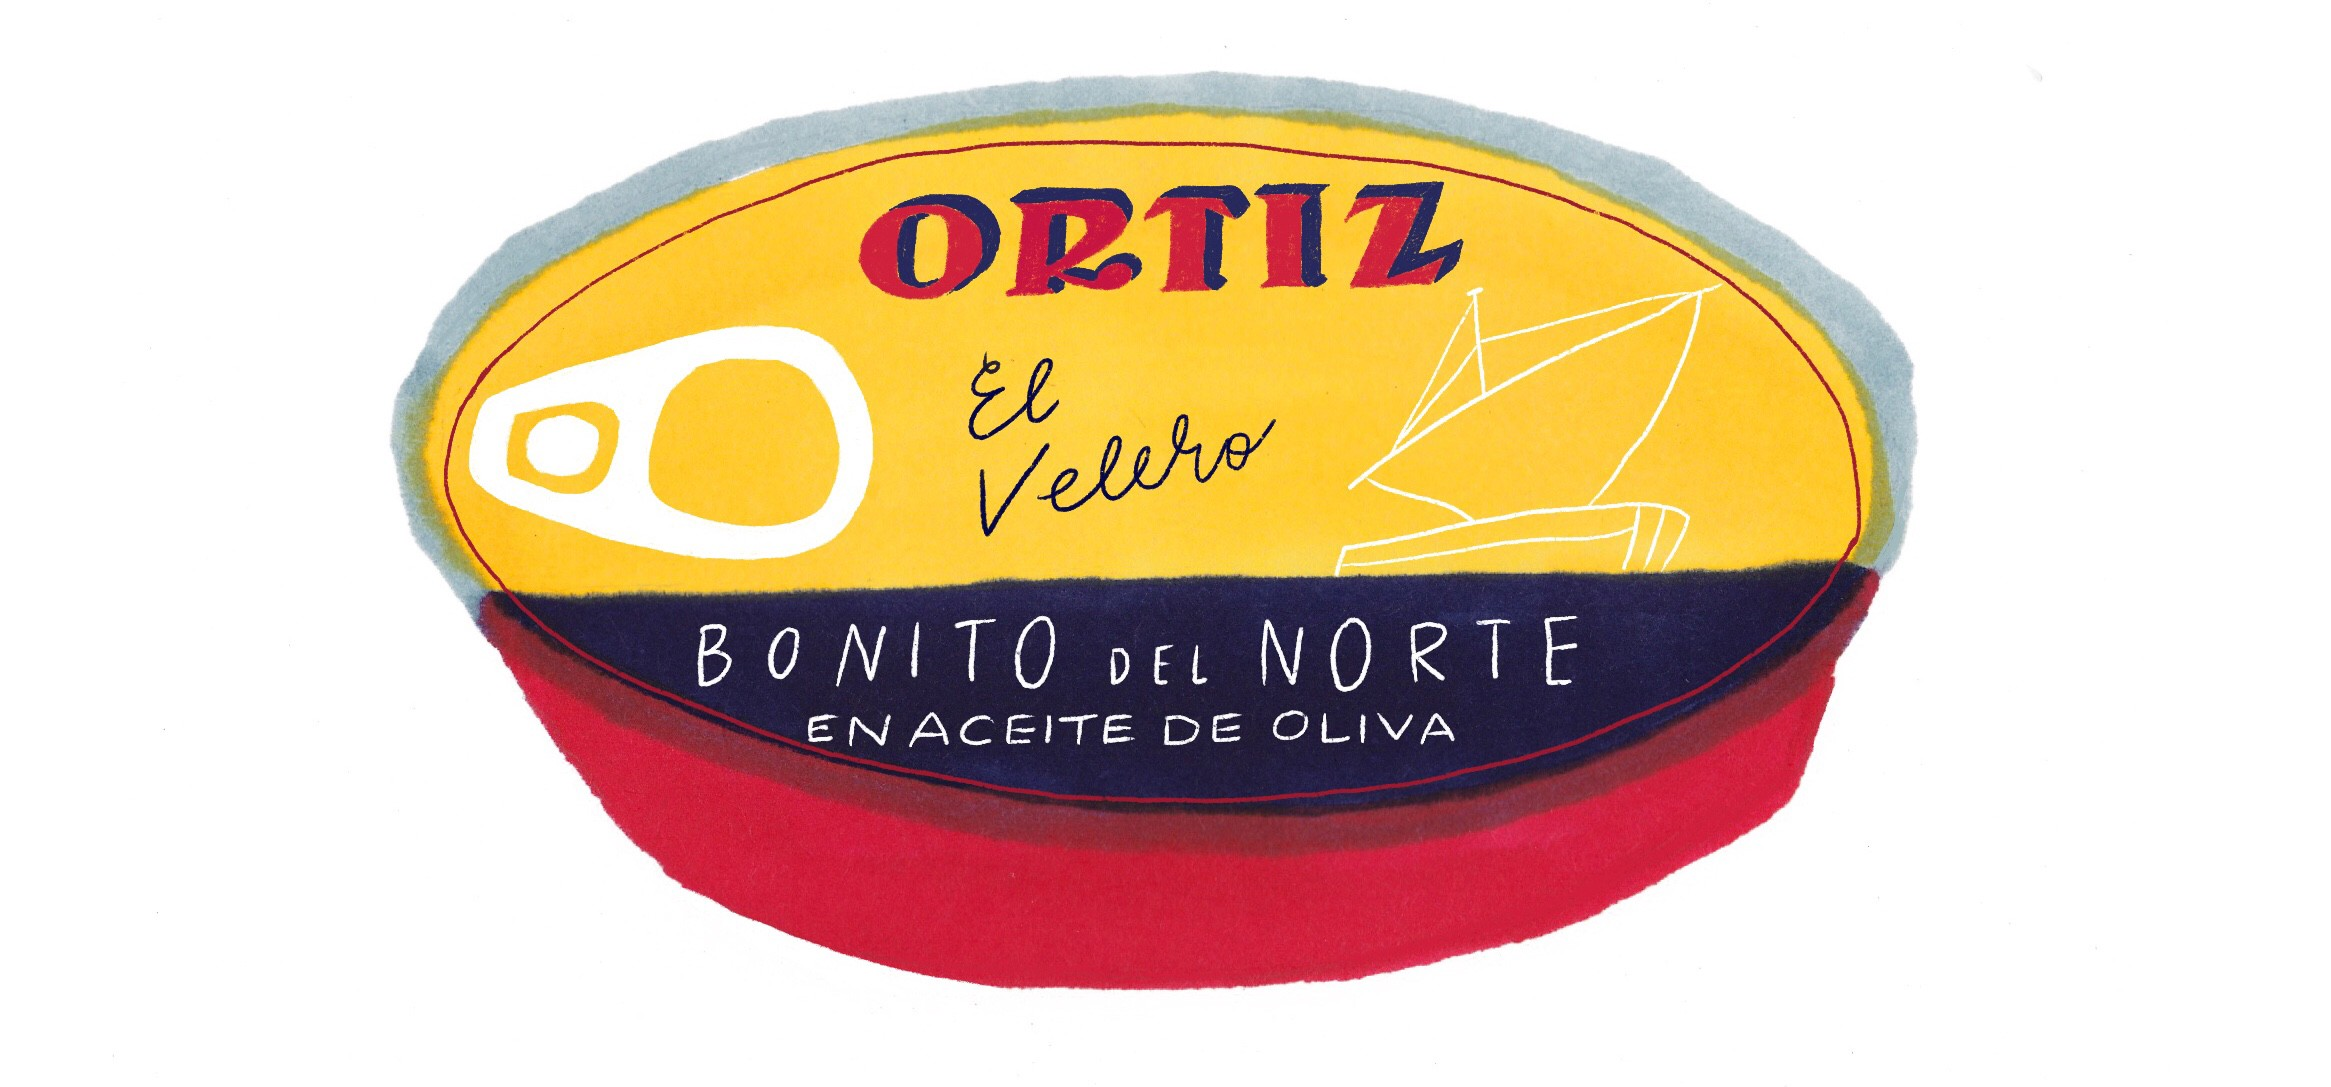 Illustration of an Ortiz can of tuna